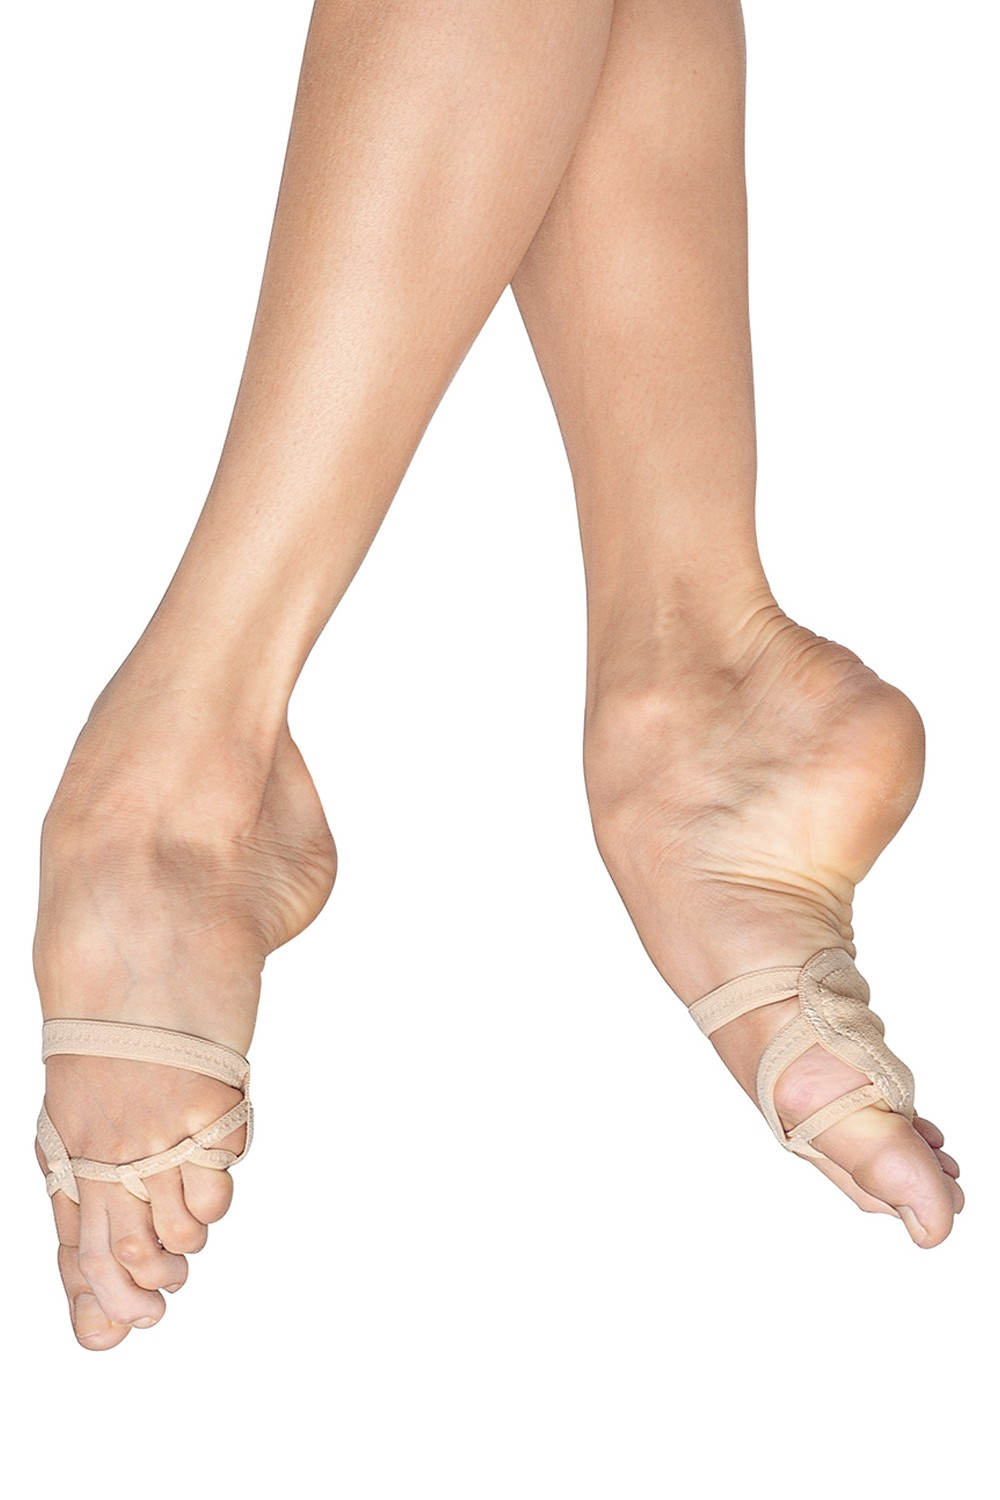 Salvapiede Ii Women's Contemporary Dance Shoes